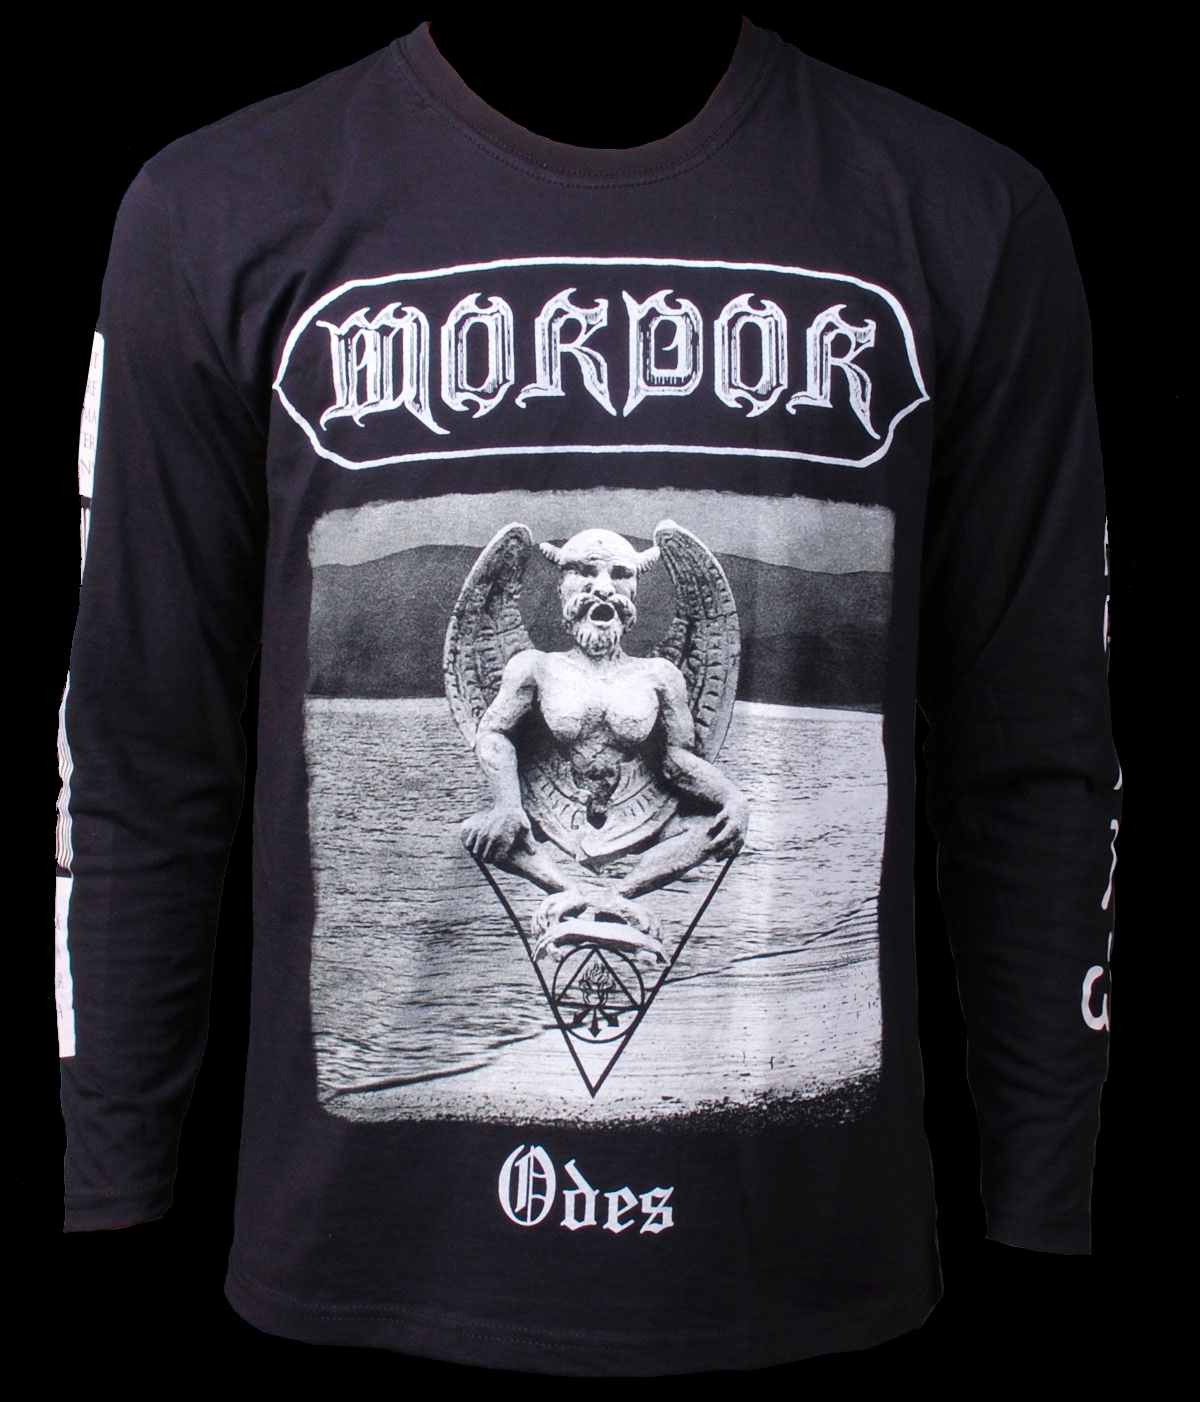 odes_tshirt_front